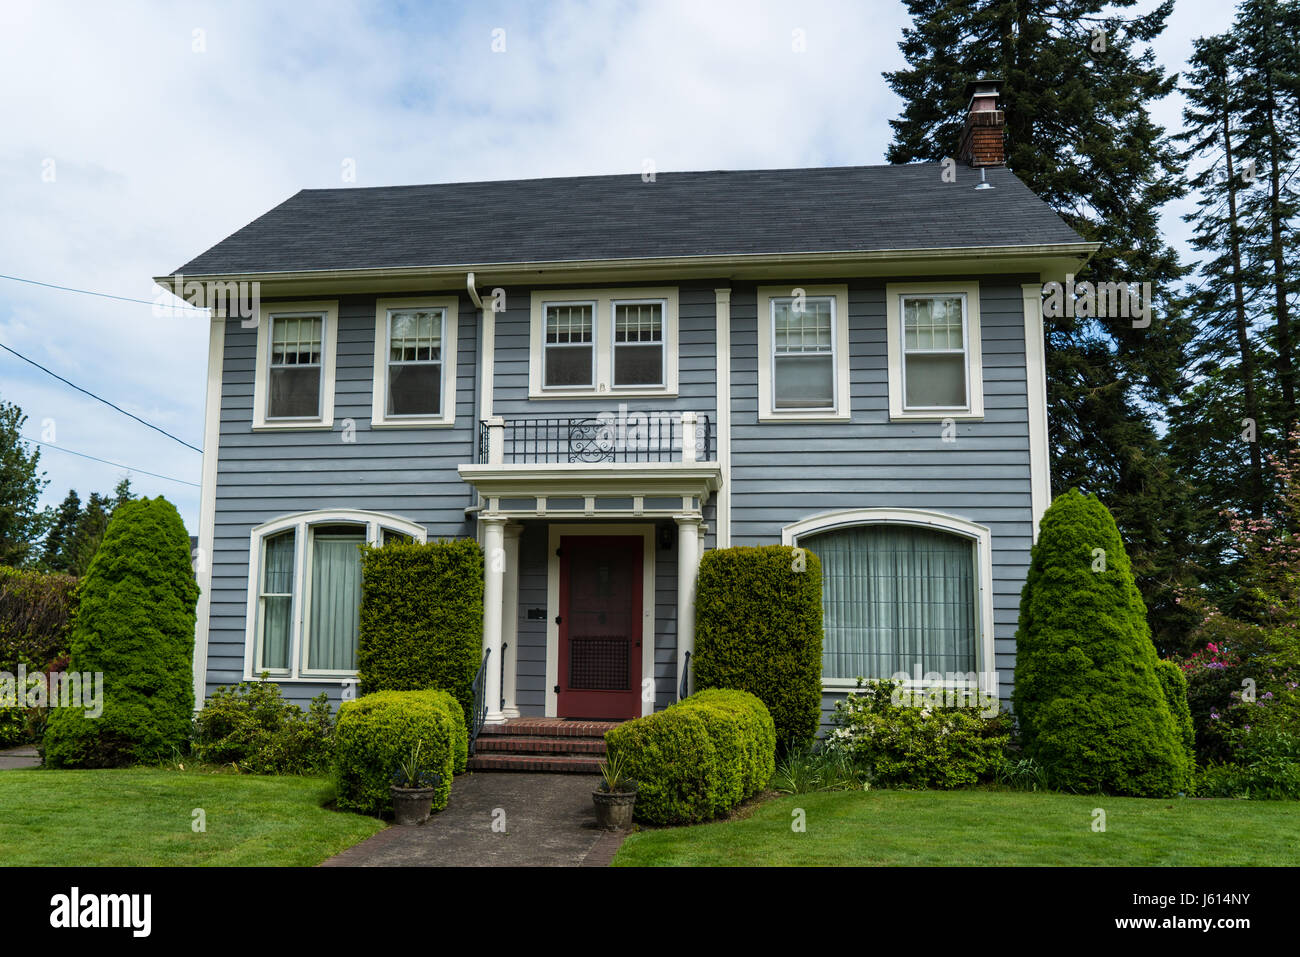 Classic american suburban house in stock photos classic for Classic american style